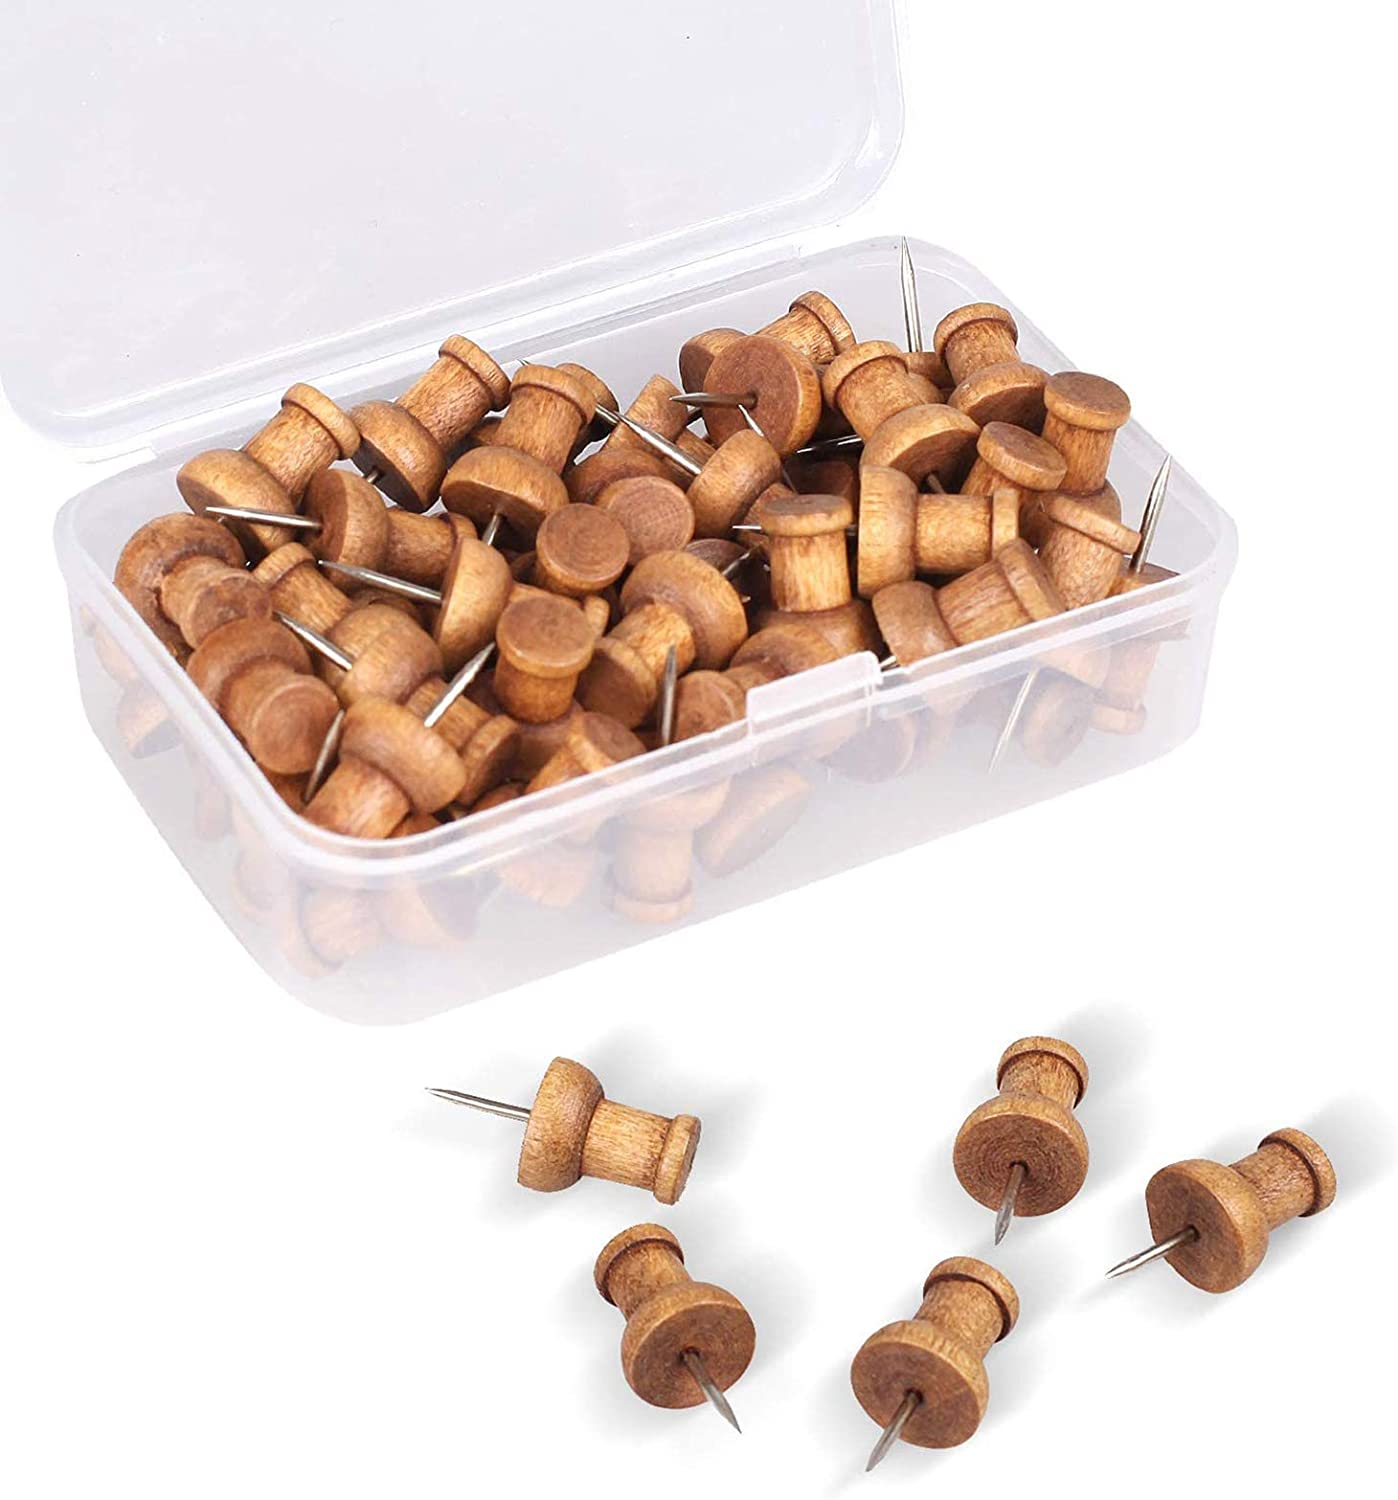 60 Pcs Wood Push Pins, Walnut, Standard, Wooden Thumb Tacks Decorative for Cork Boards Map Photos Calendar and Home Office Craft Projects with Box